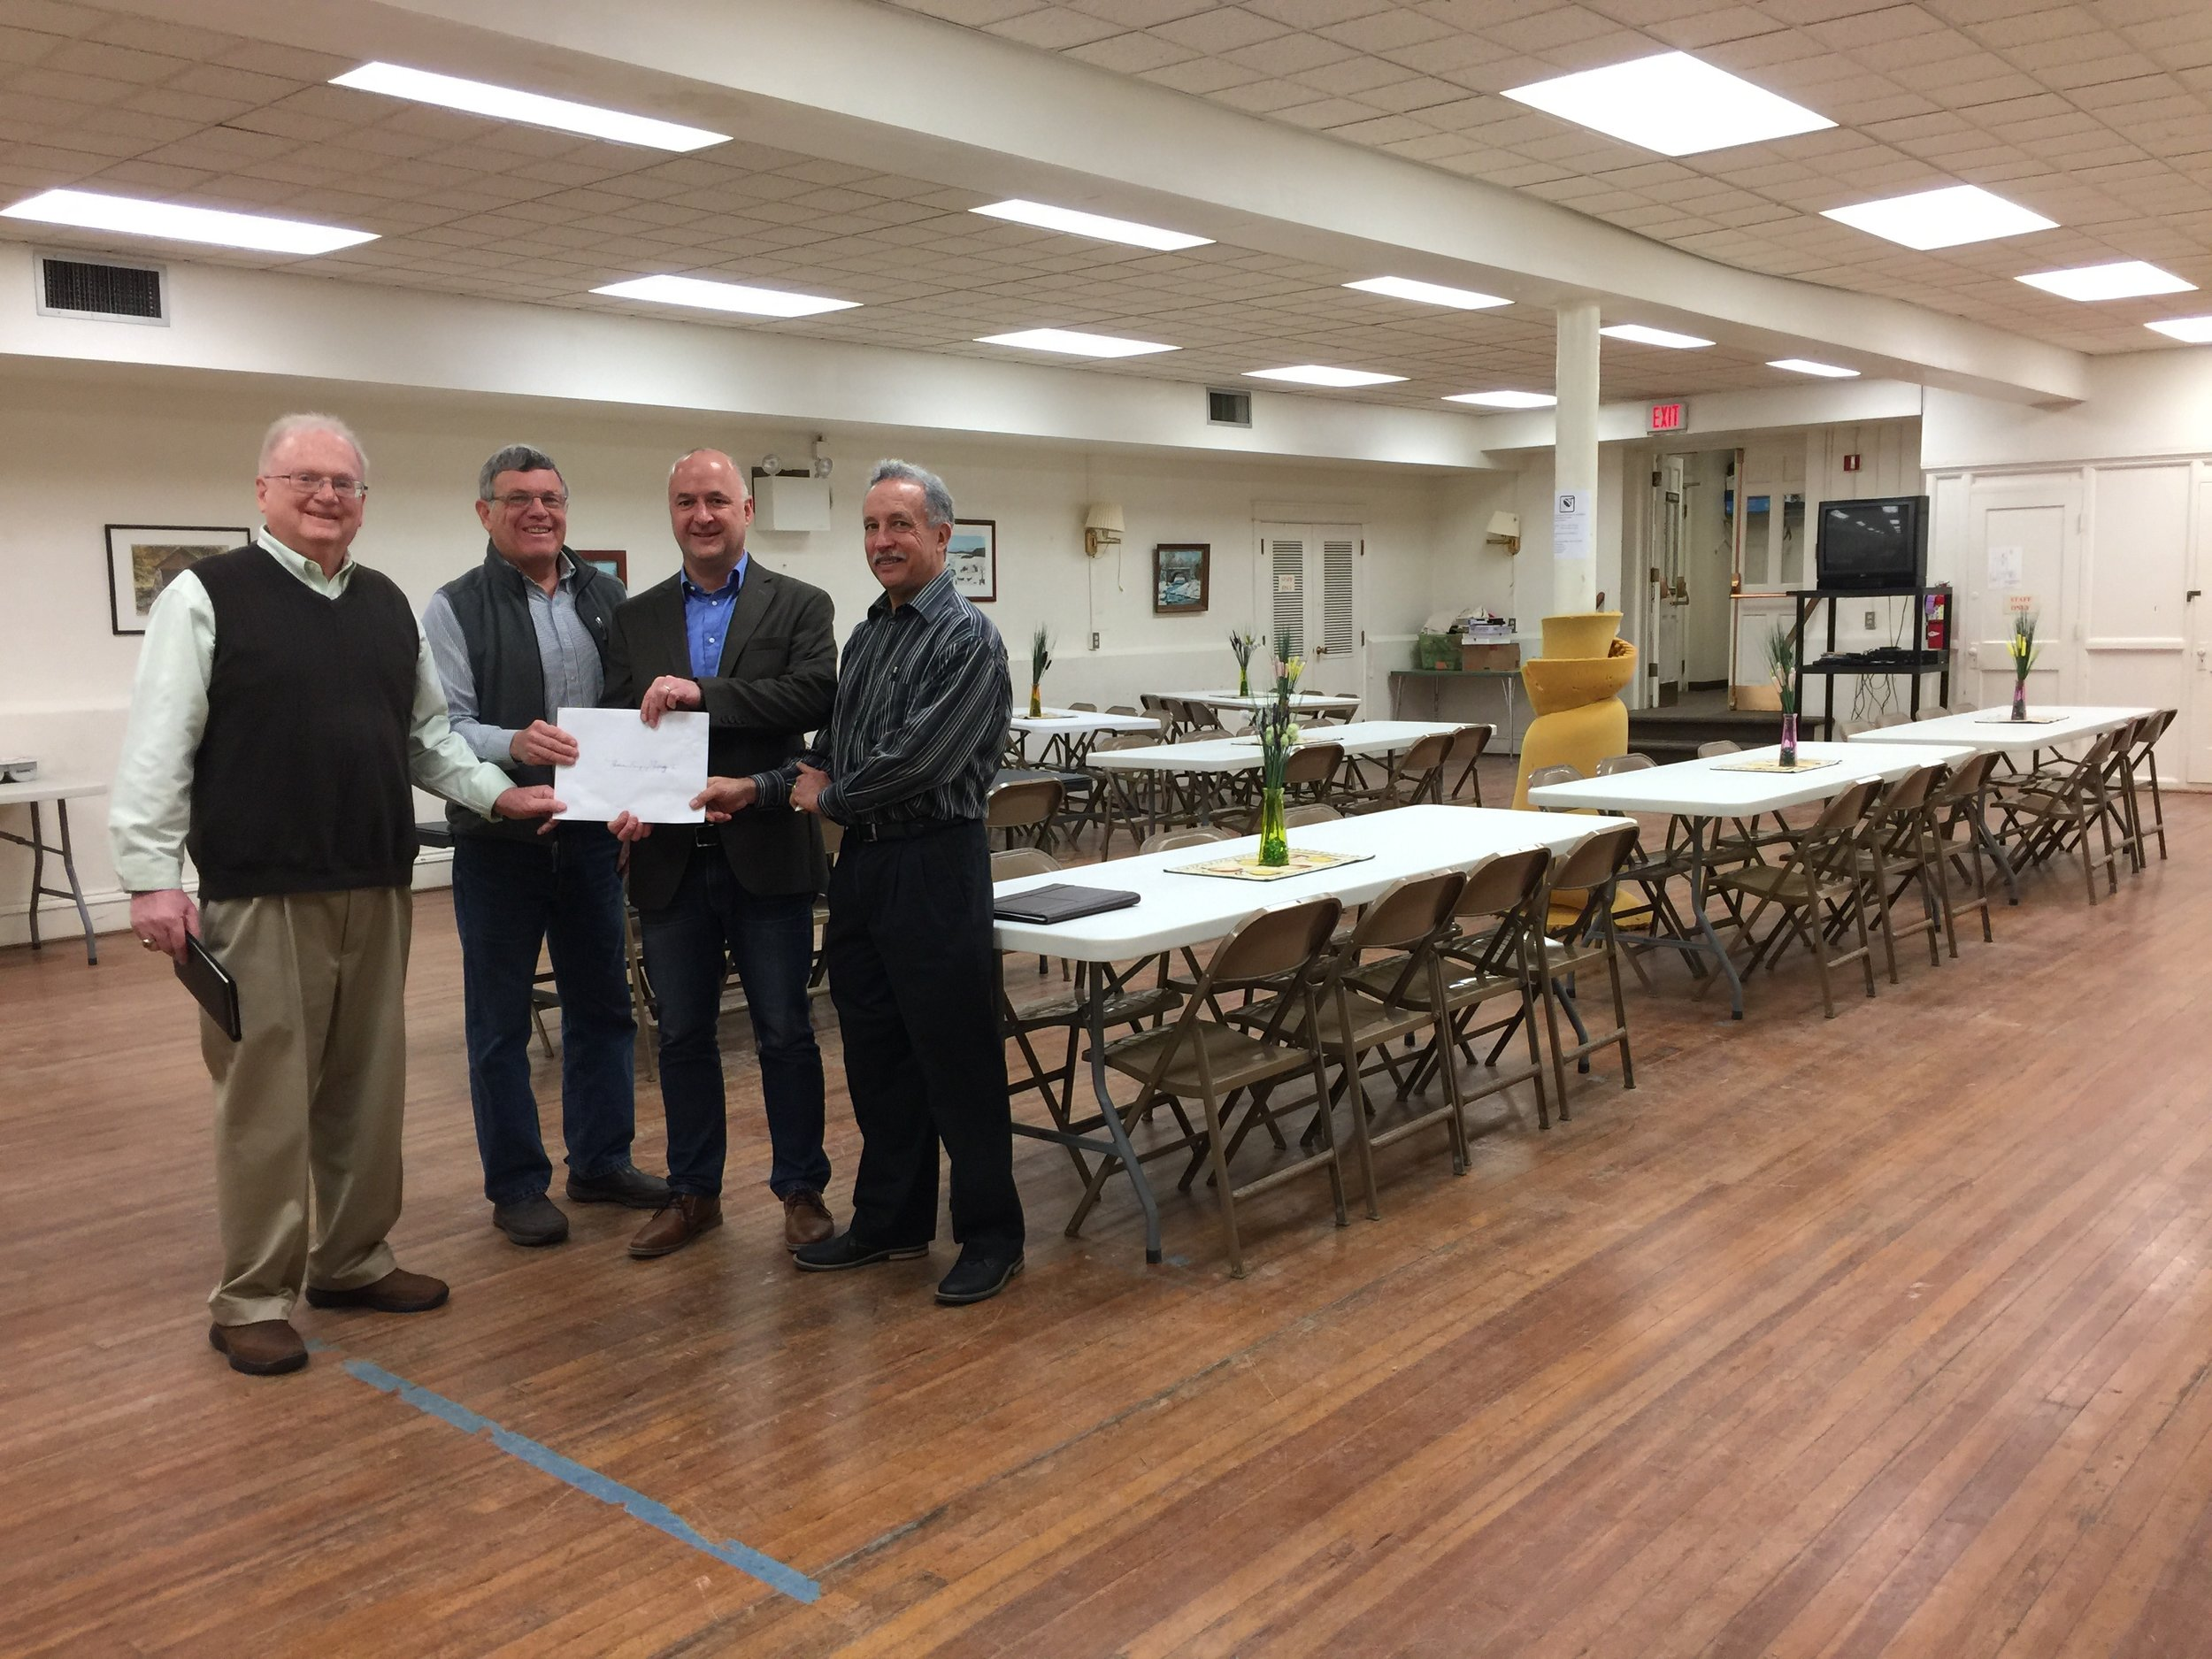 The Laros Foundation is pleased to support the efforts of Bethlehem Sheltering,Inc. in providing overnight shelter in one location effective 2017.